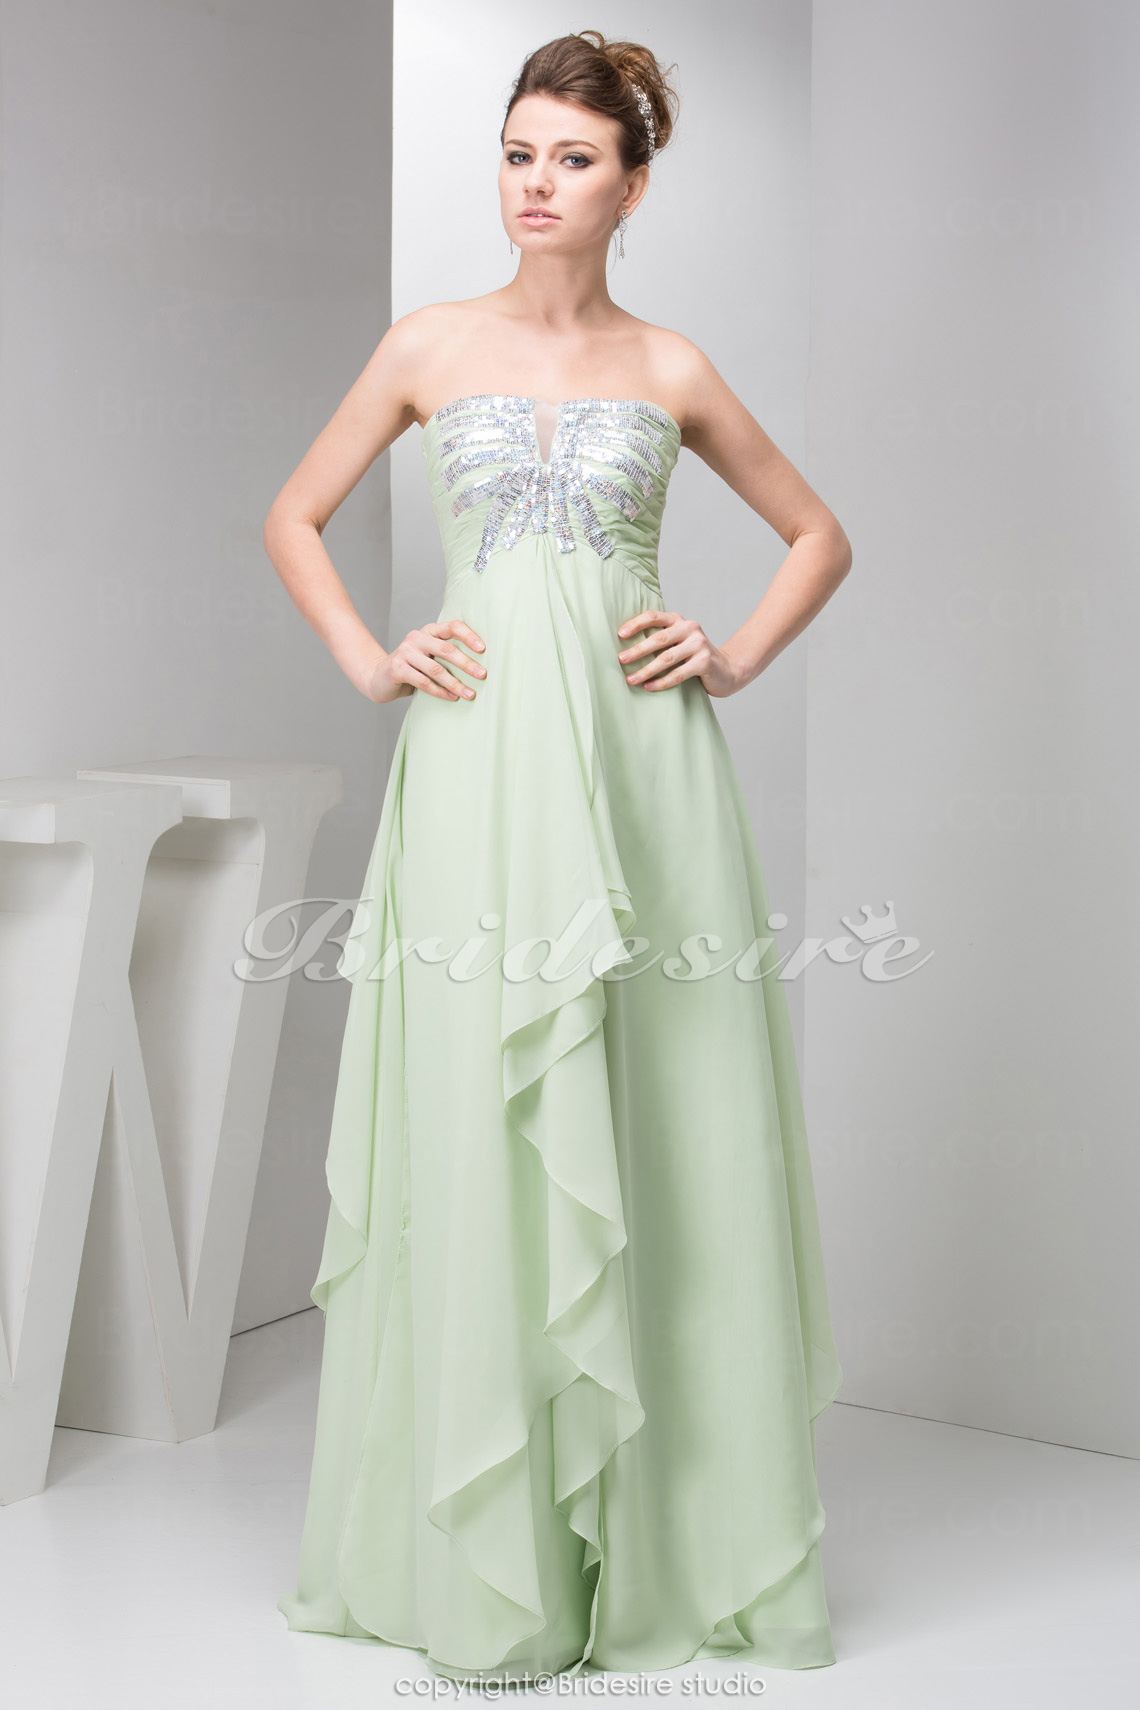 A-line Strapless Floor-length Sleeveless Chiffon Dress